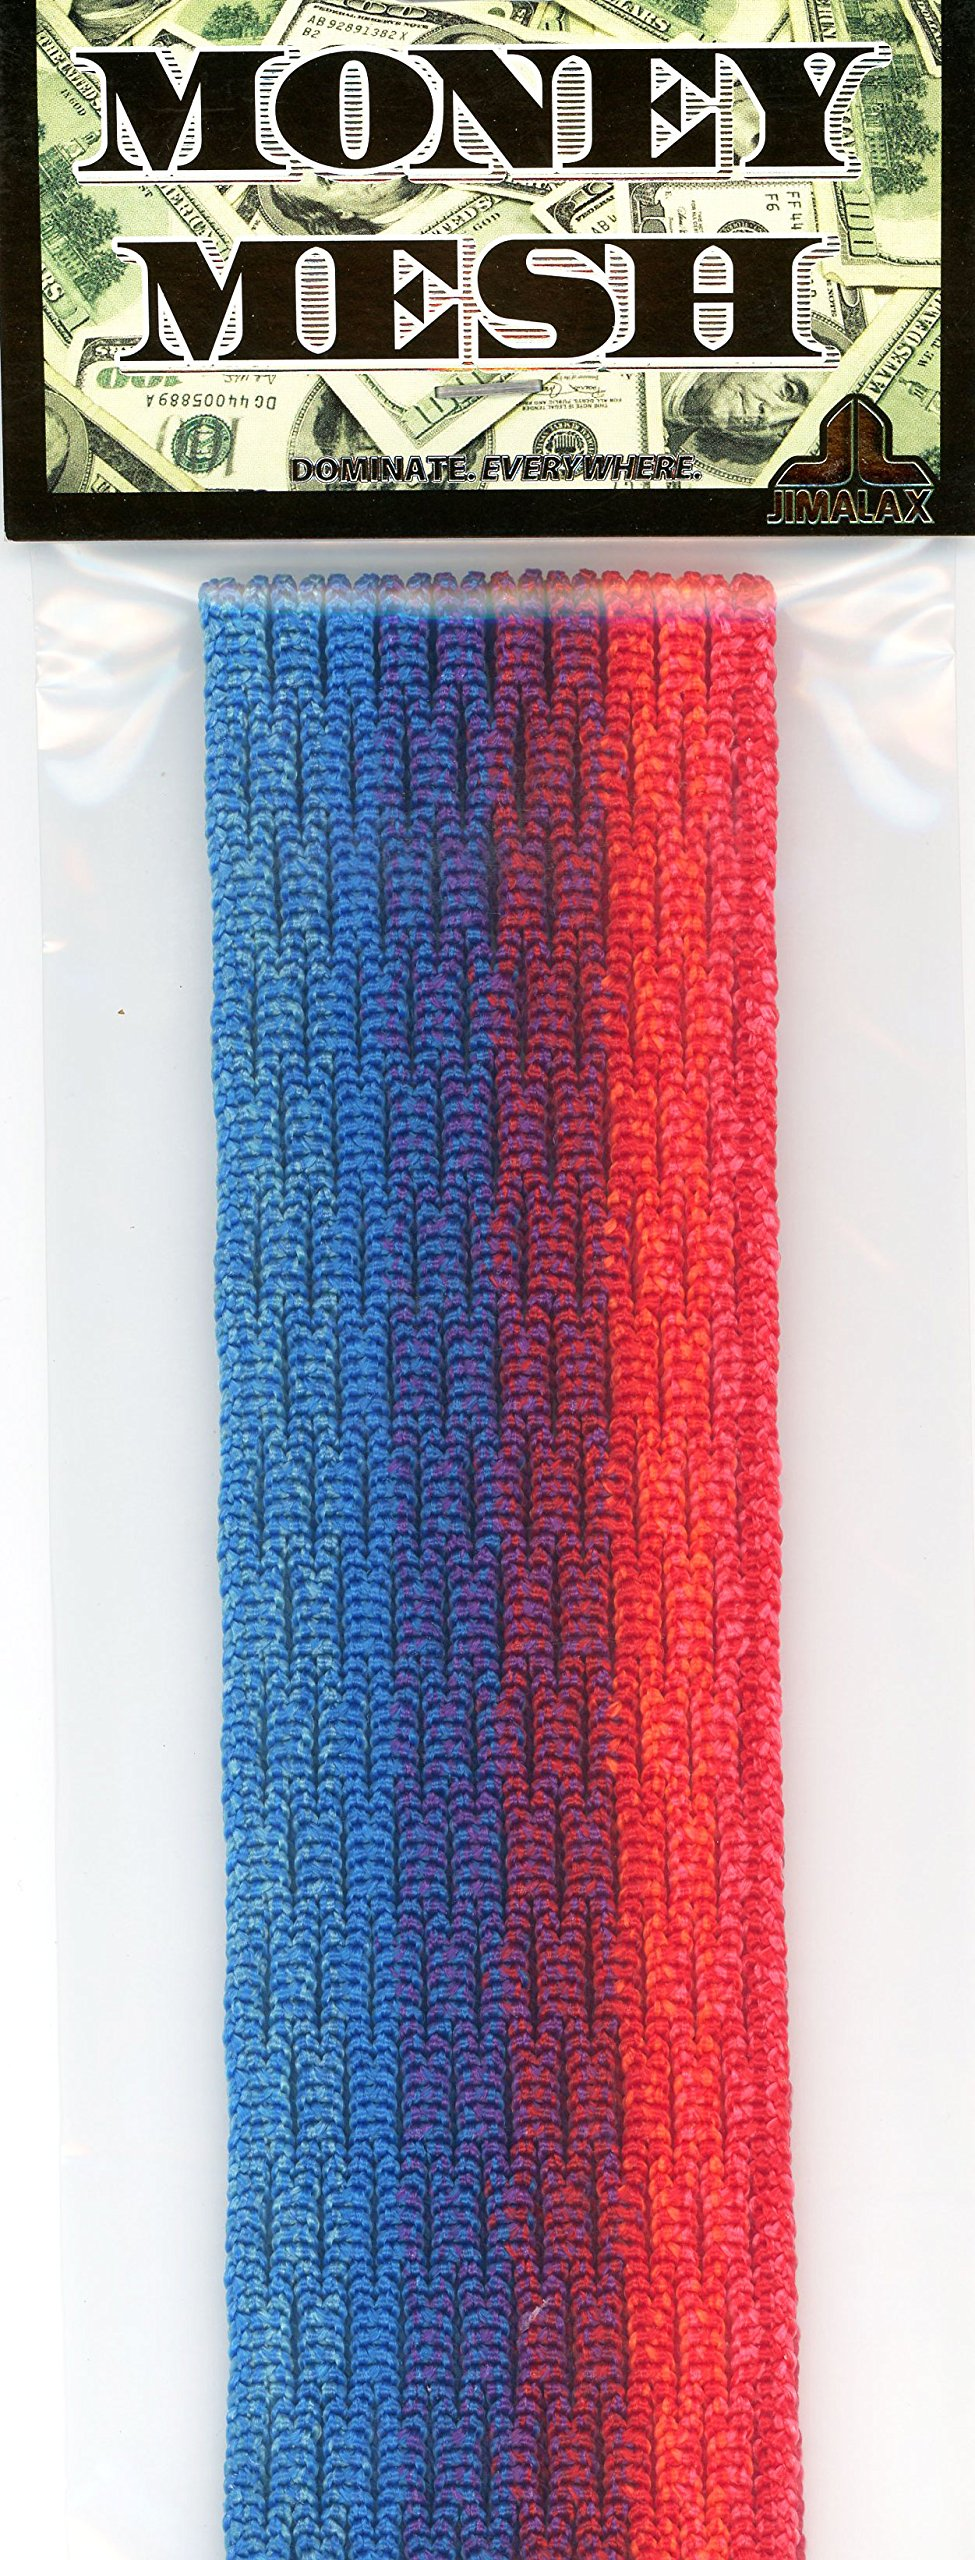 Jimalax Lacrosse Money Mesh Fusion Blue Red Money-Mesh-Blu-Red-1P